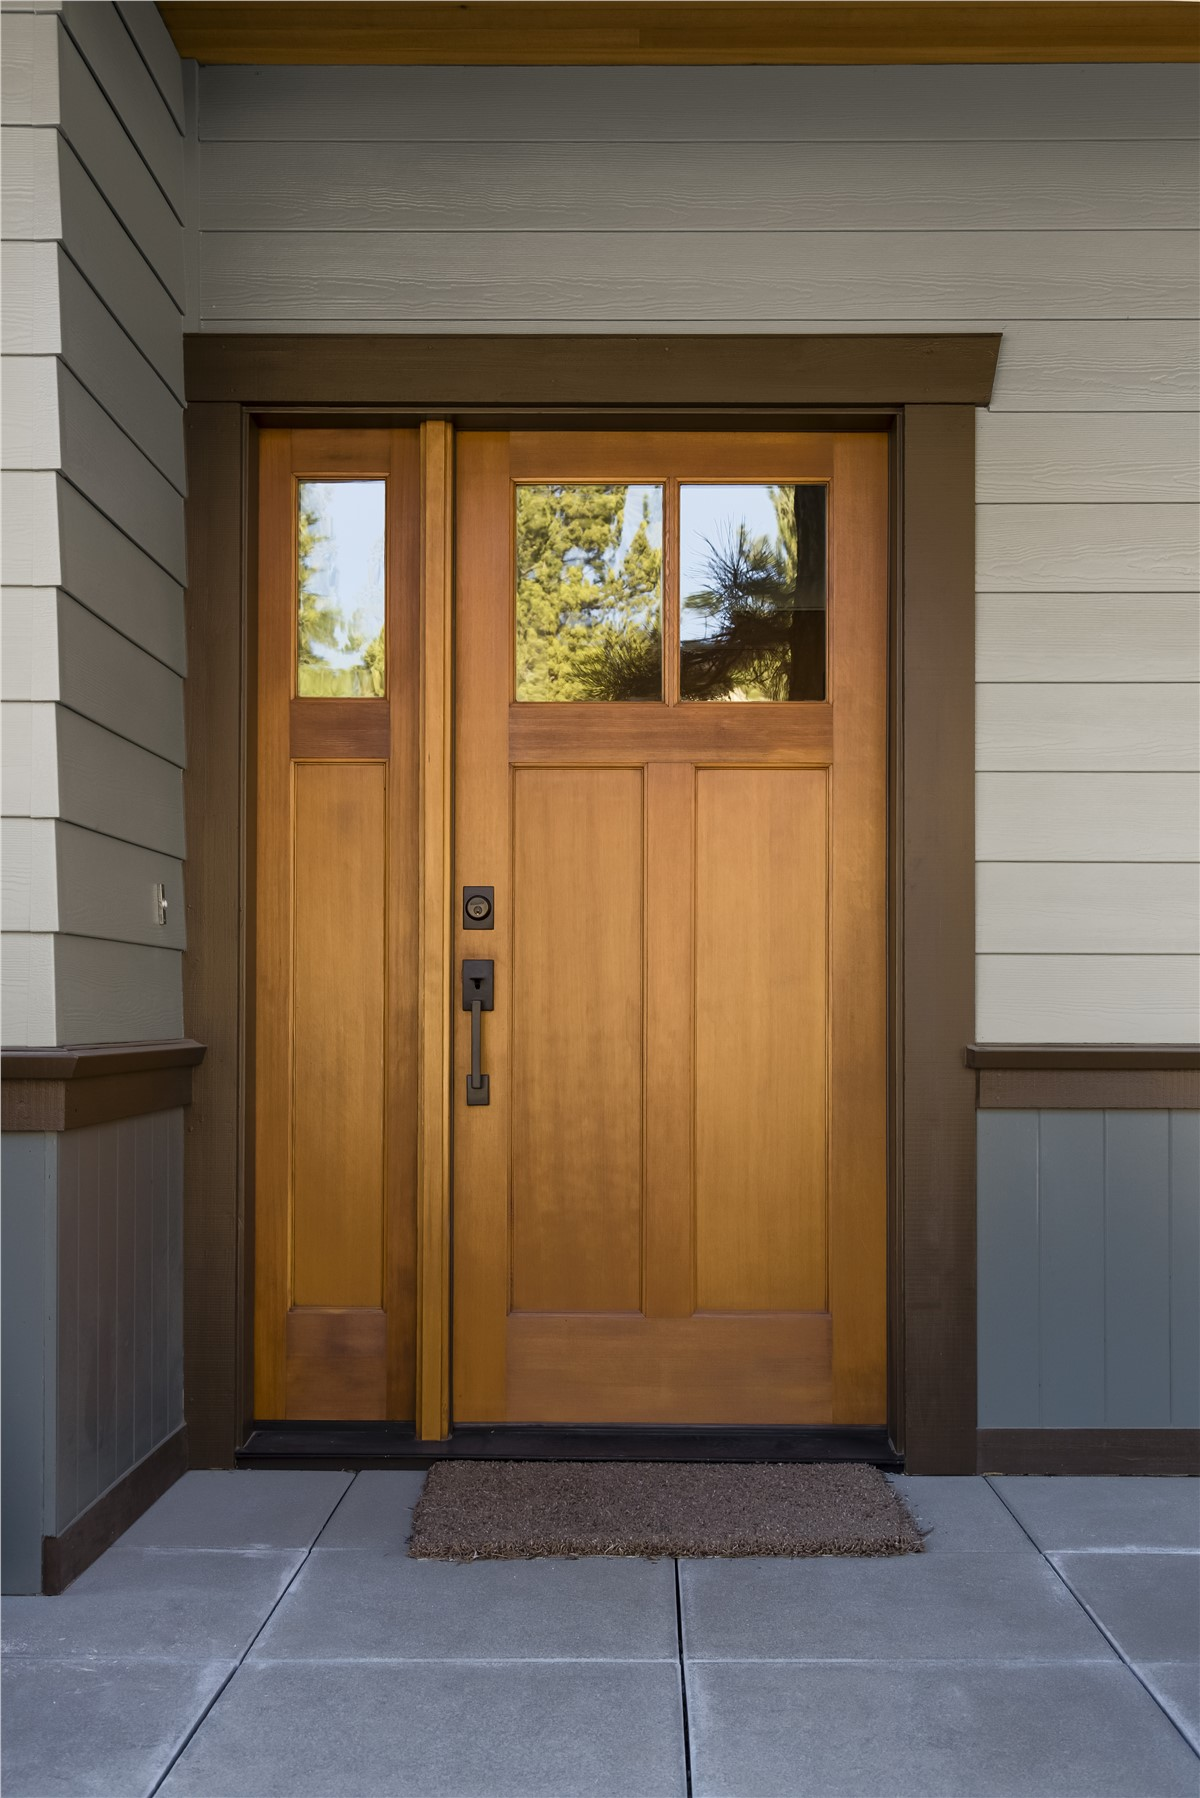 Fiberglass entry doors chicago fiberglass door chicago for Entry door manufacturers